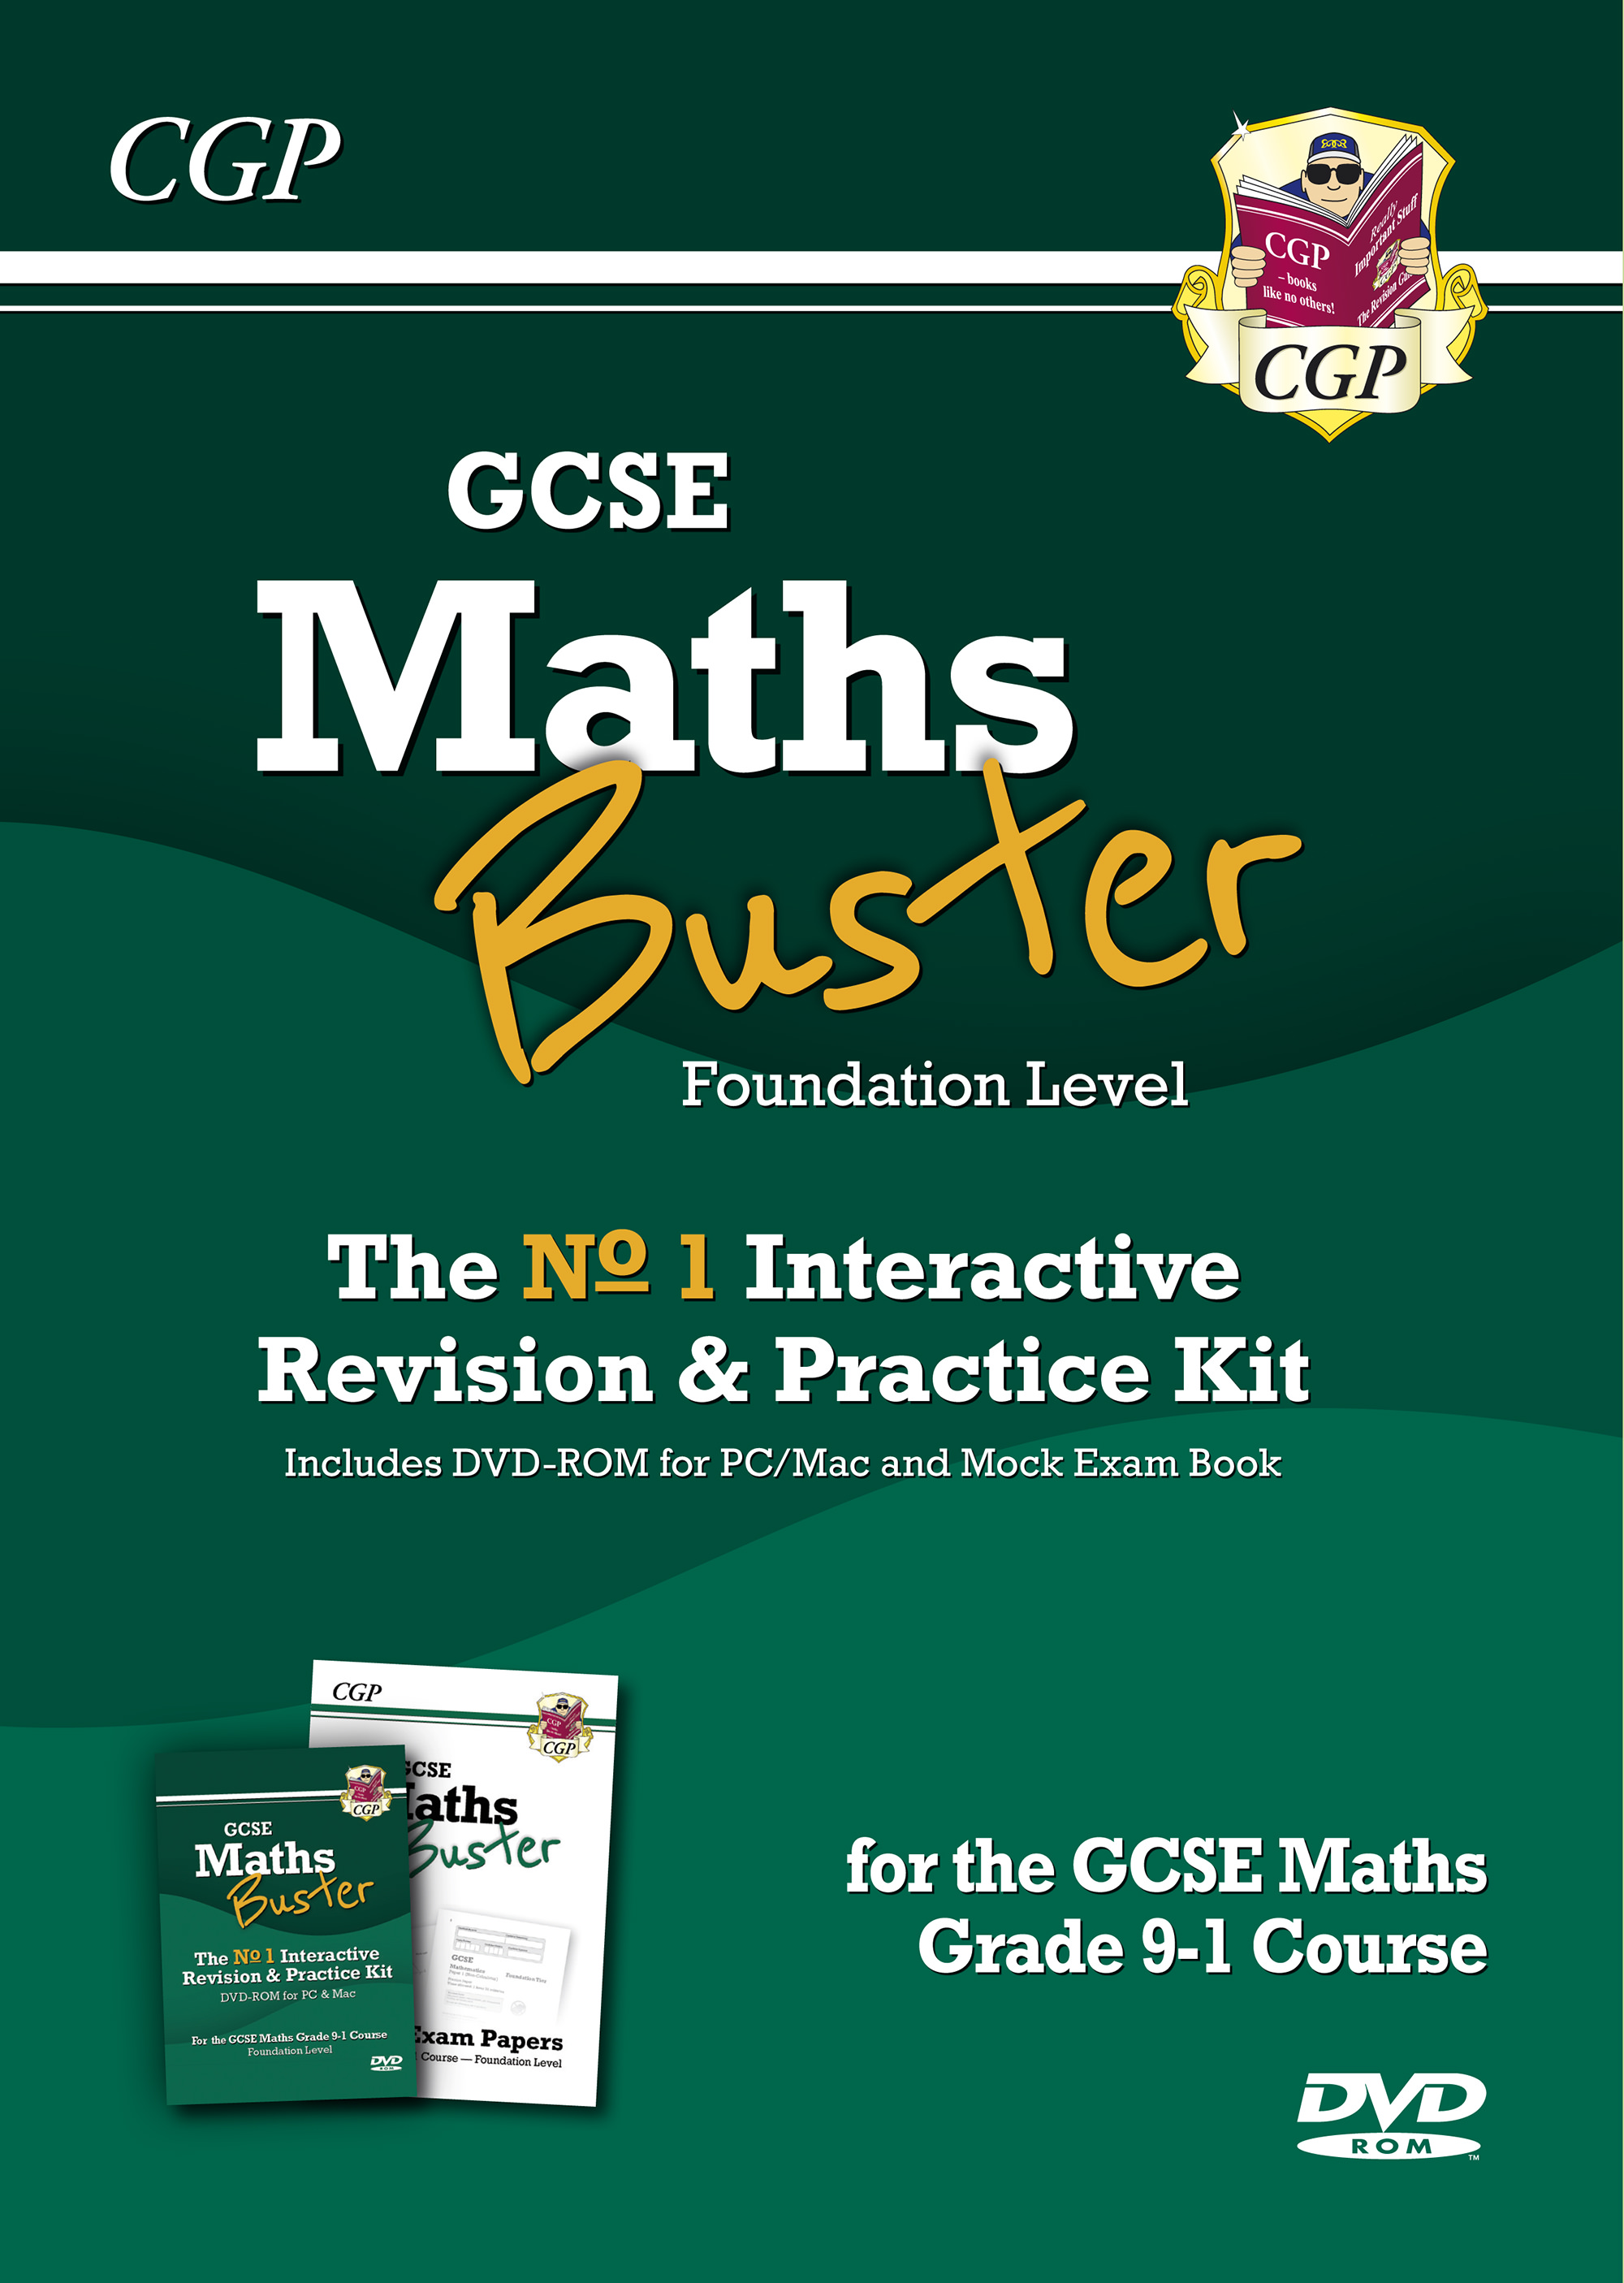 42MBFB3 - MathsBuster: GCSE Maths Interactive Revision (Grade 9-1 Course) Foundn - DVD&Exam Practice